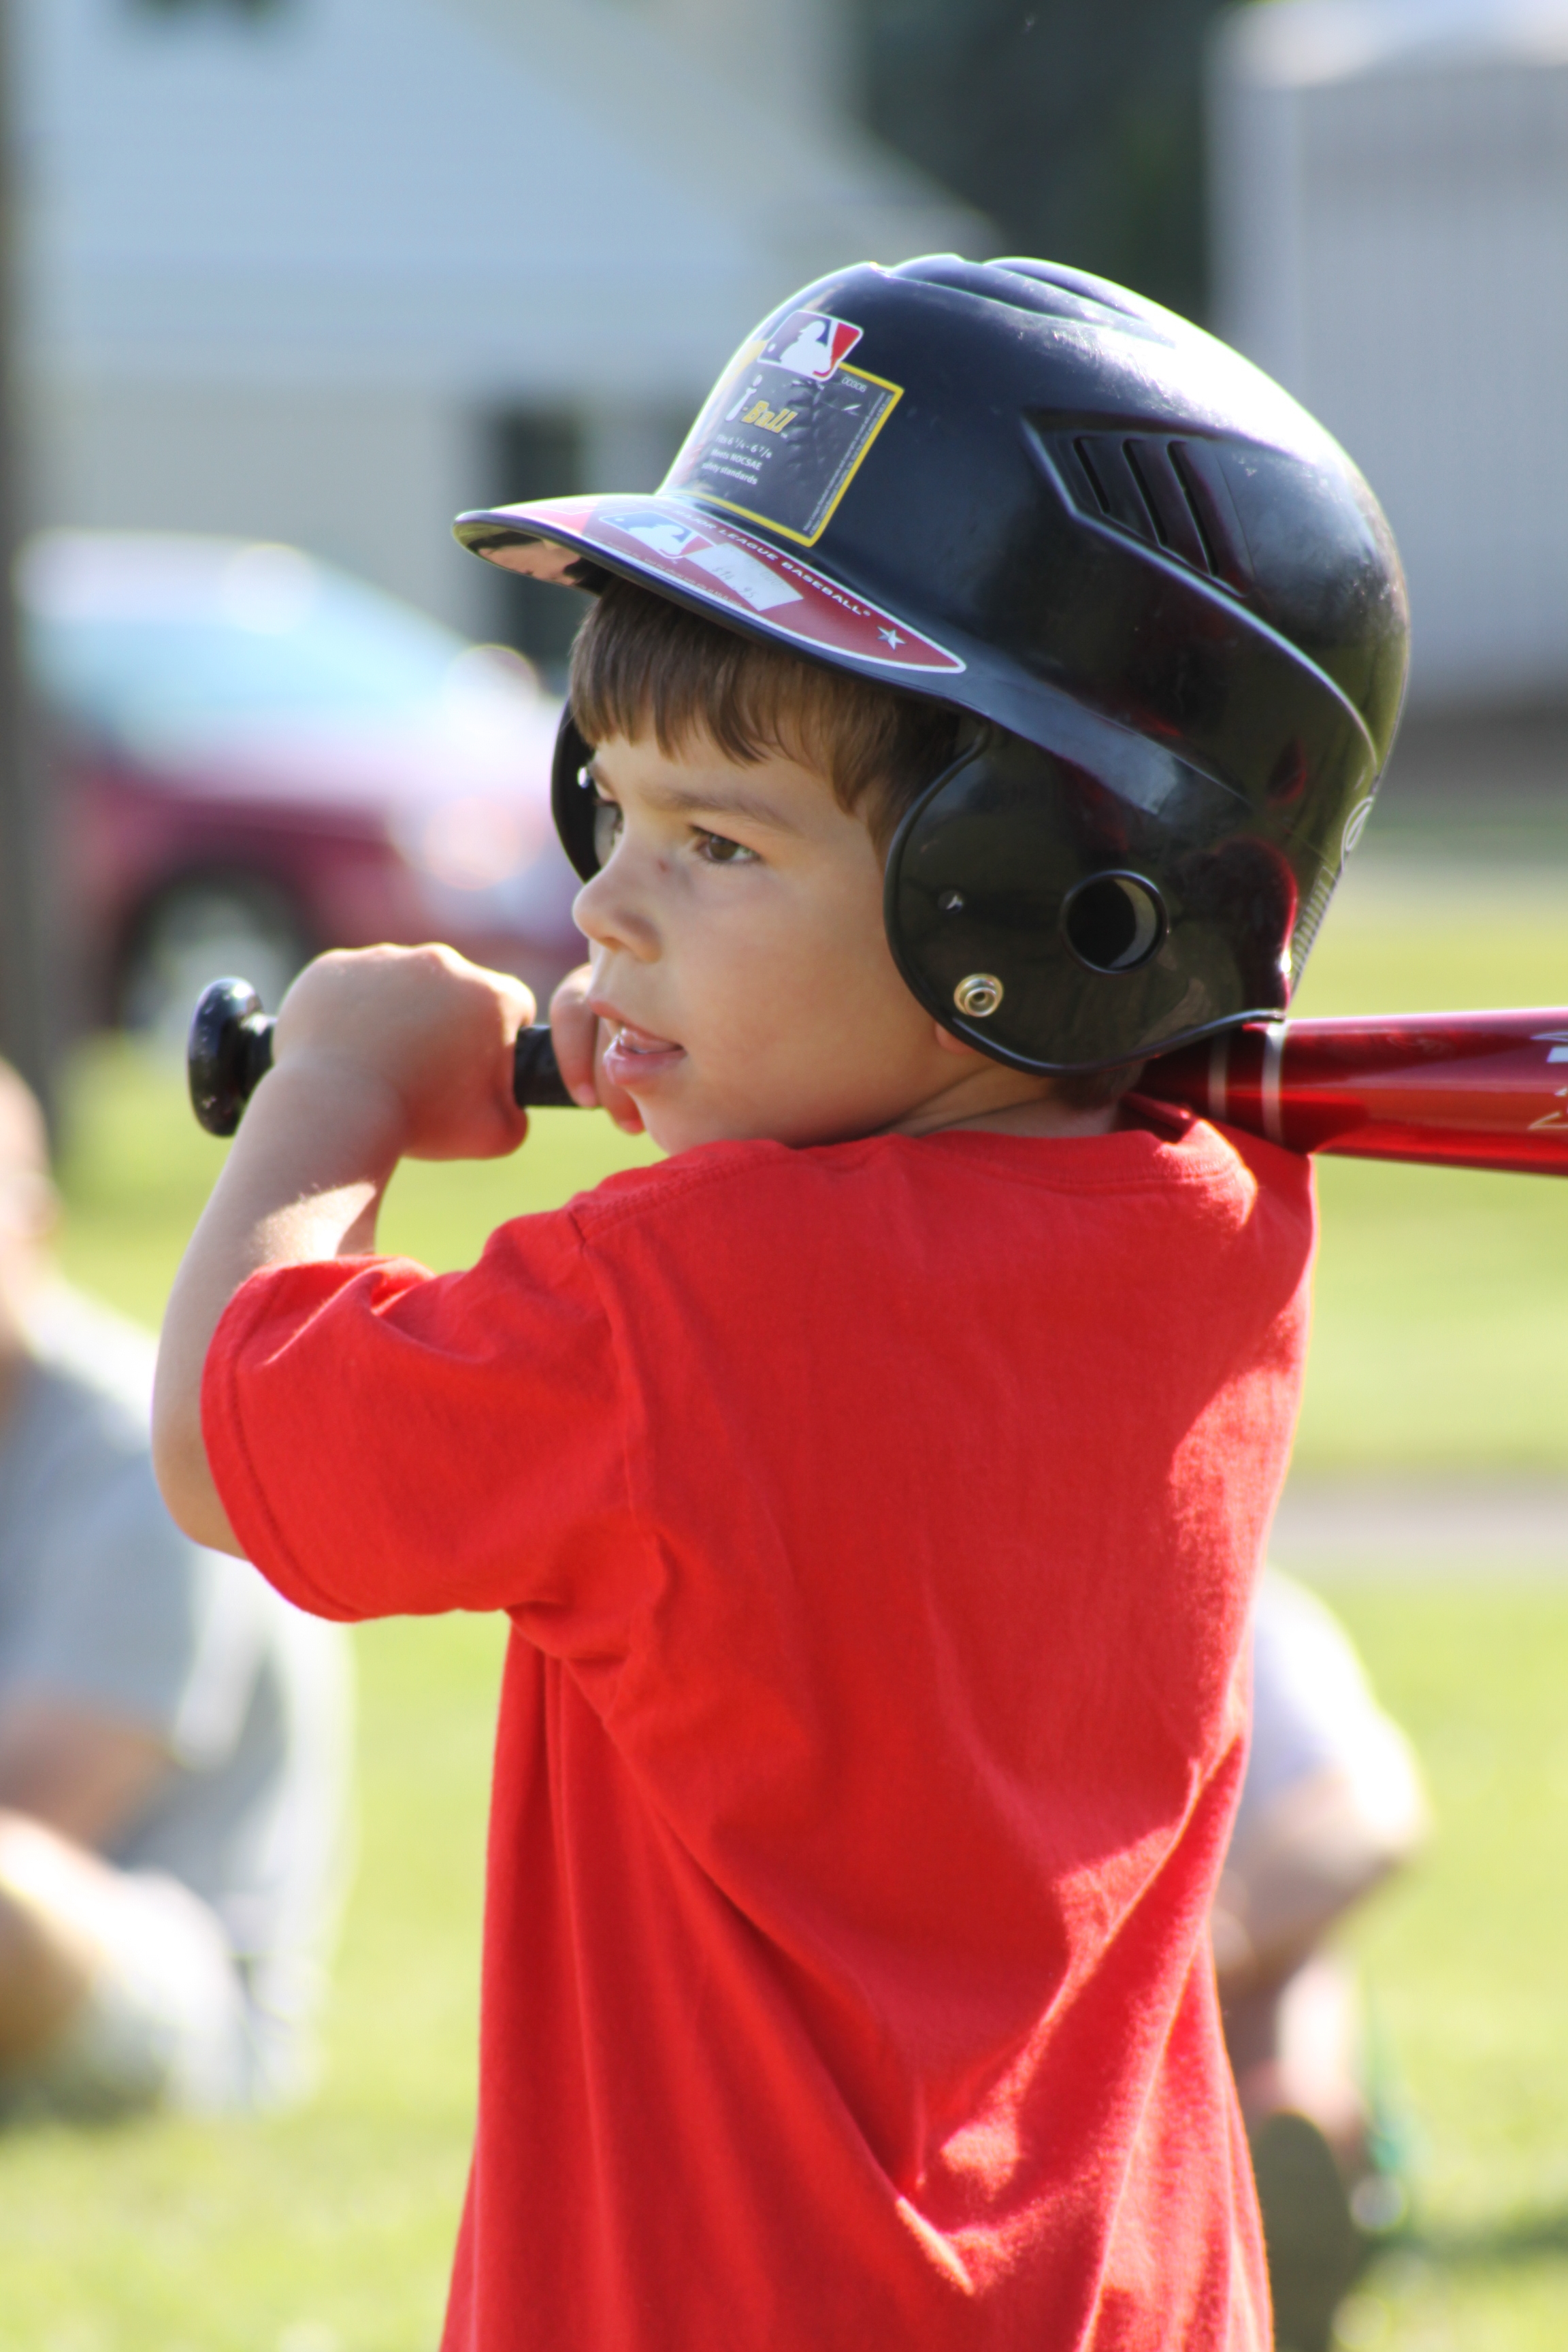 Baseball kid swinging